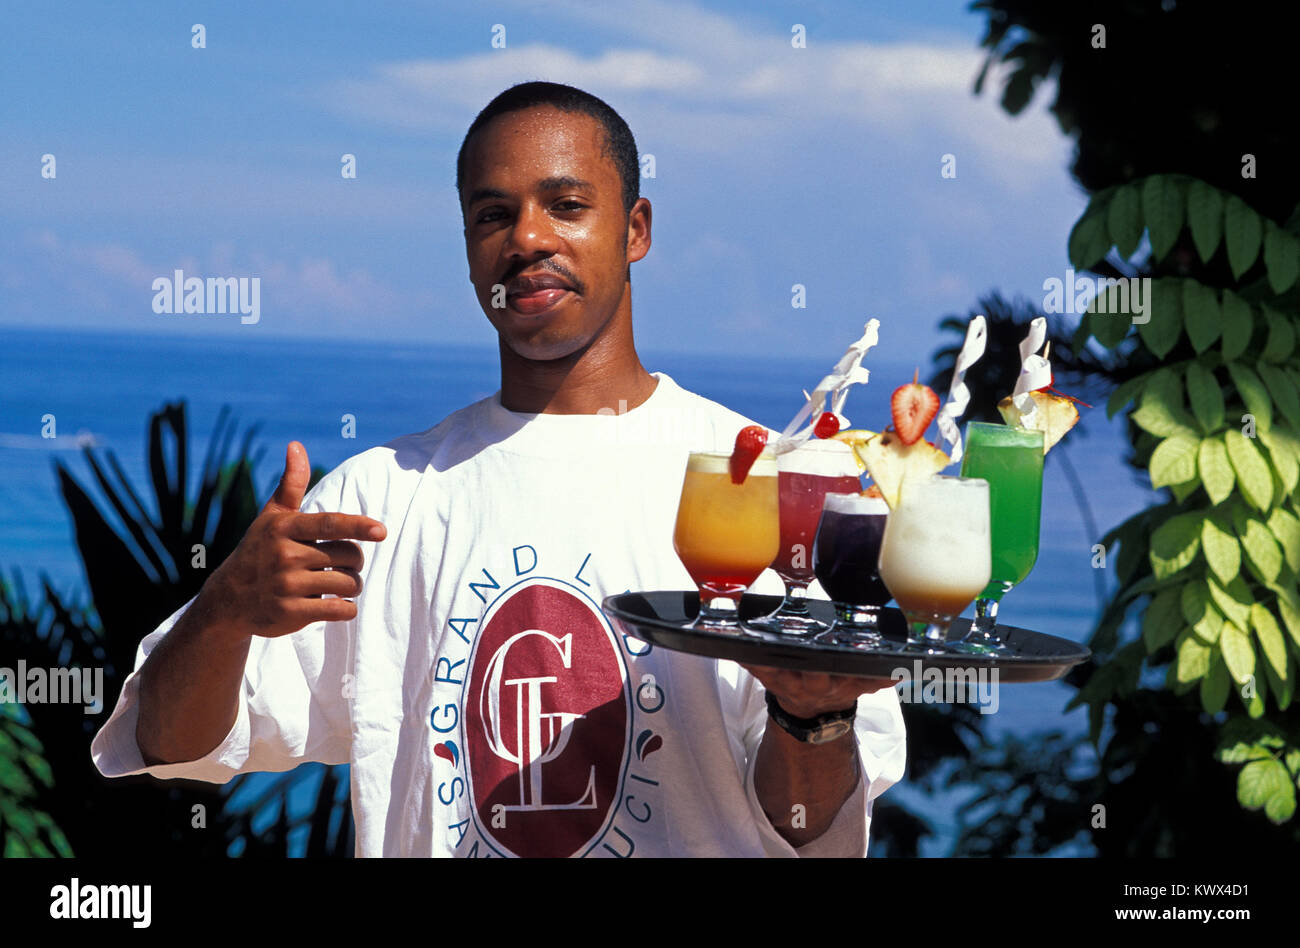 Barkeeper with Coktails, Jamaica - Stock Image